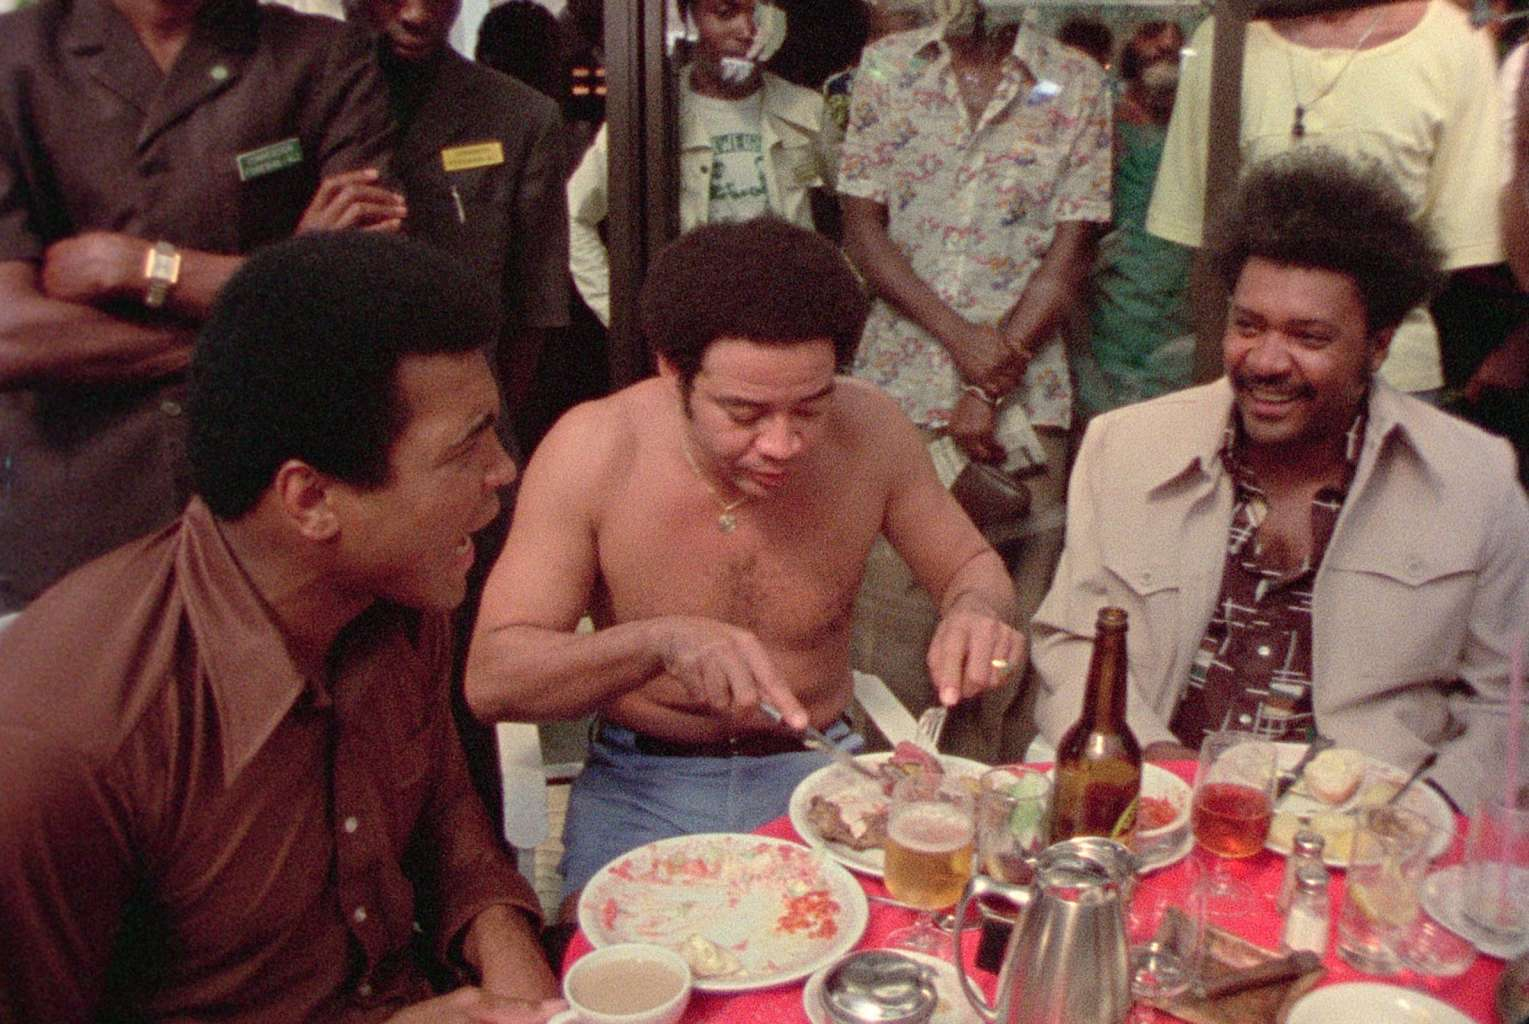 Mohammed Ali, Bill Withers & Don King